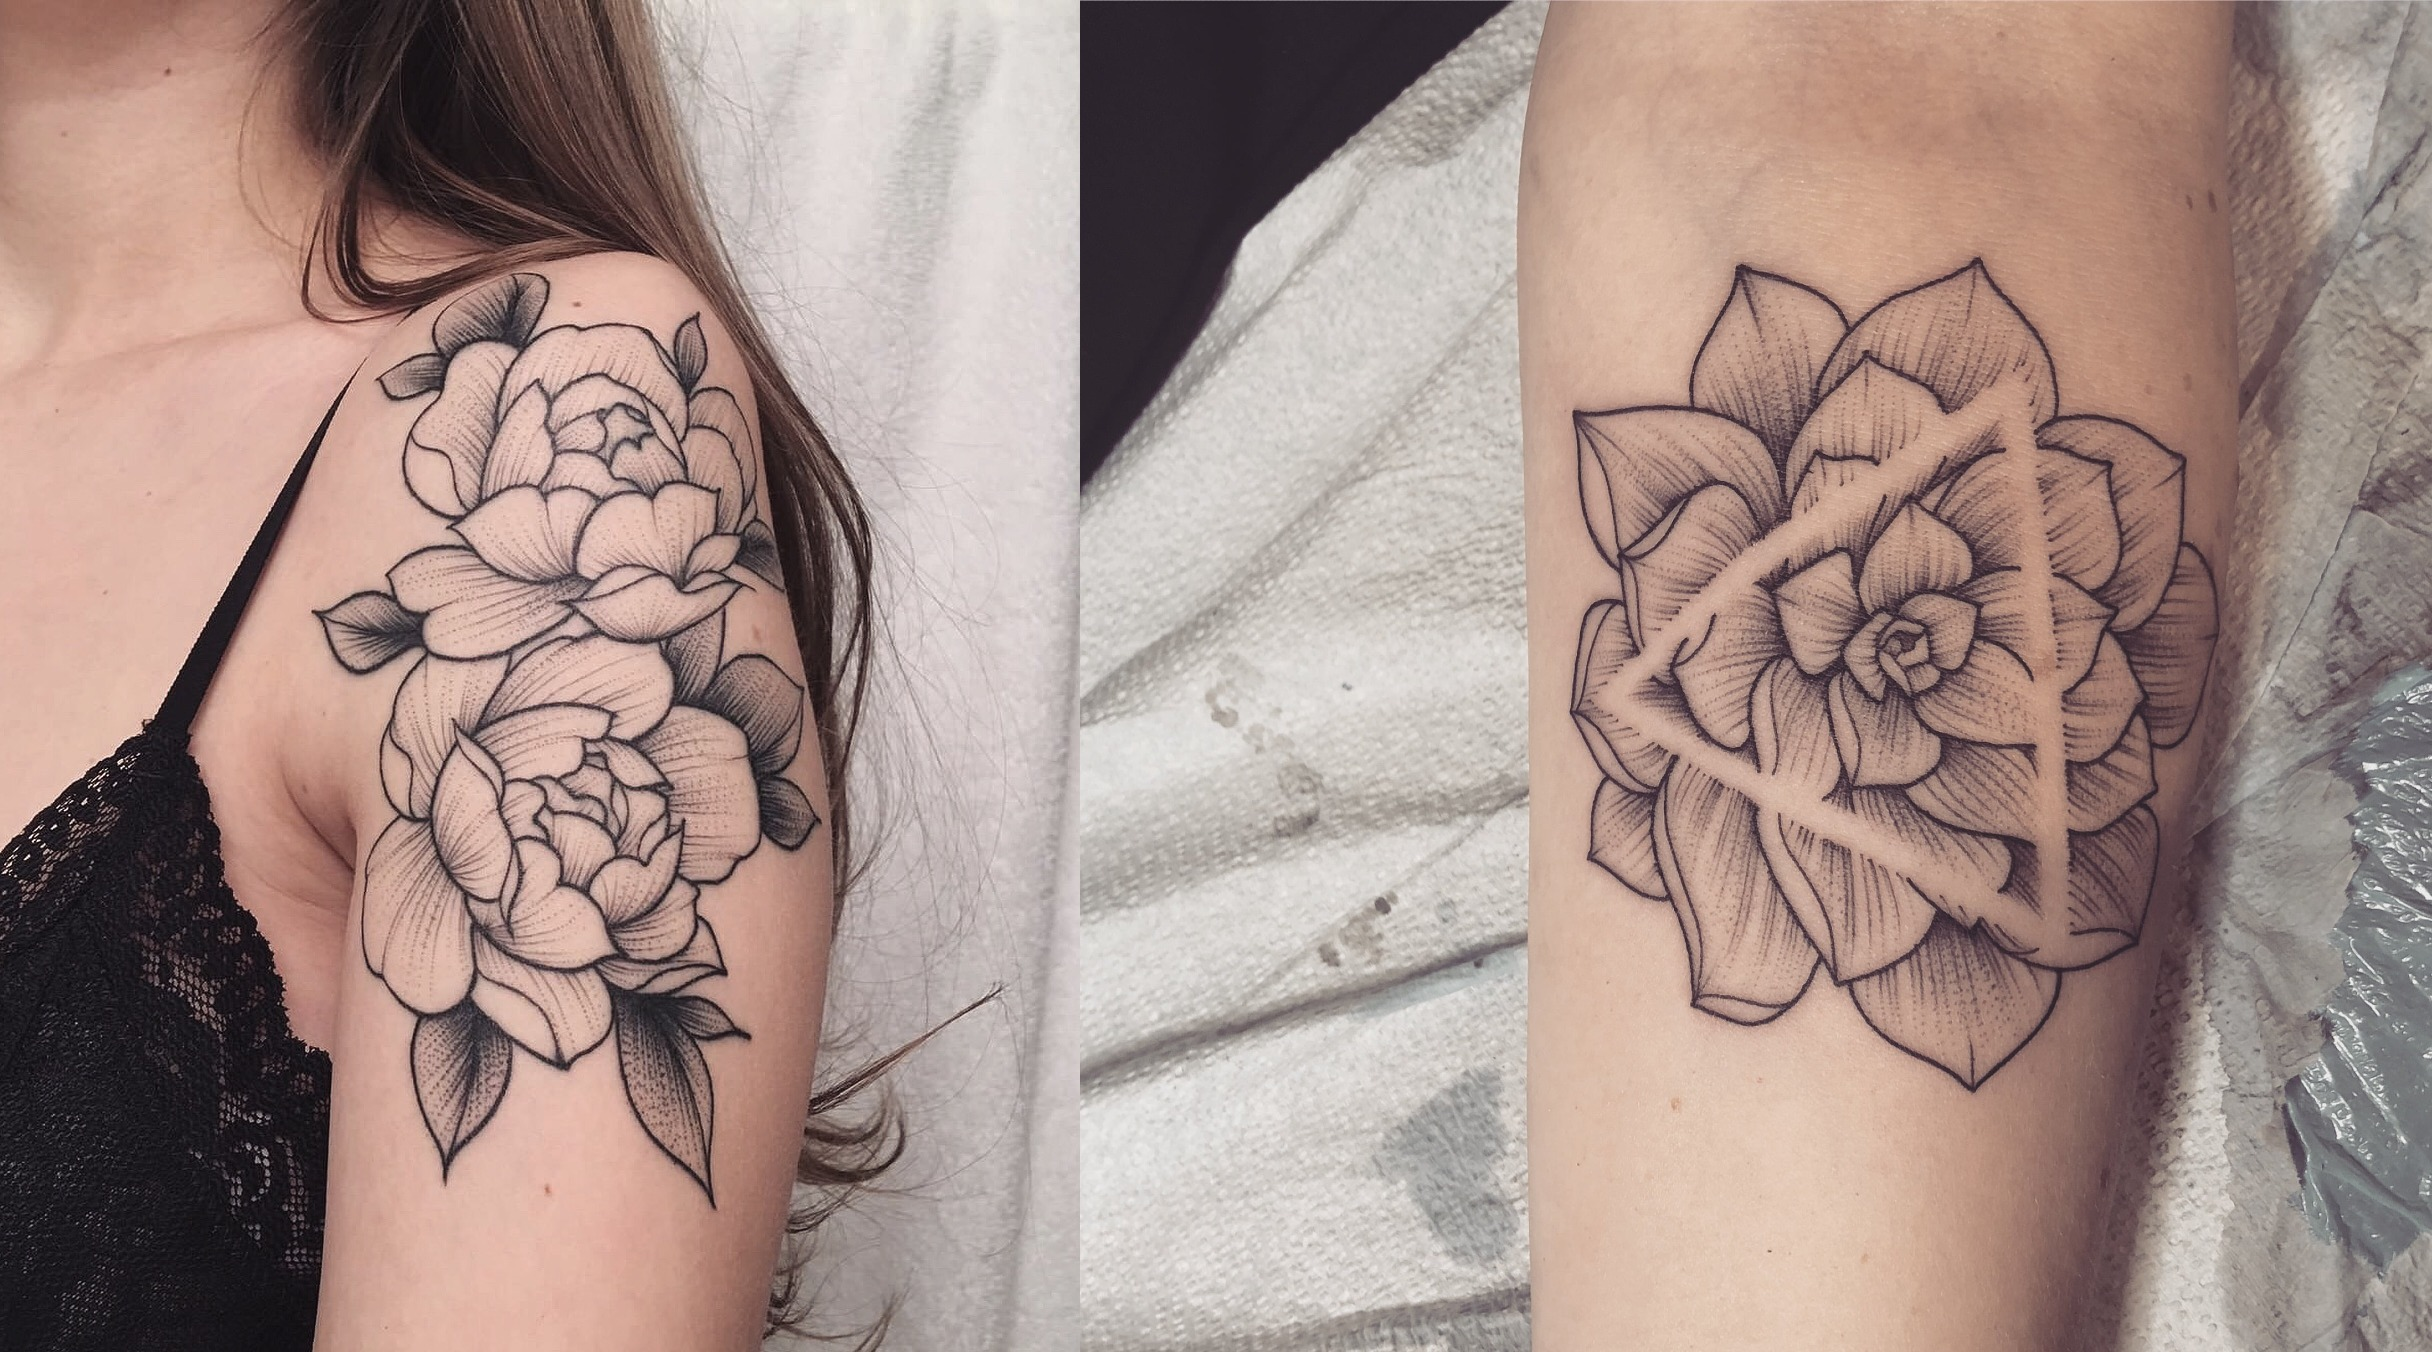 Floral Tattoos: Exquisite Black and Grey work by Vanessa Dong